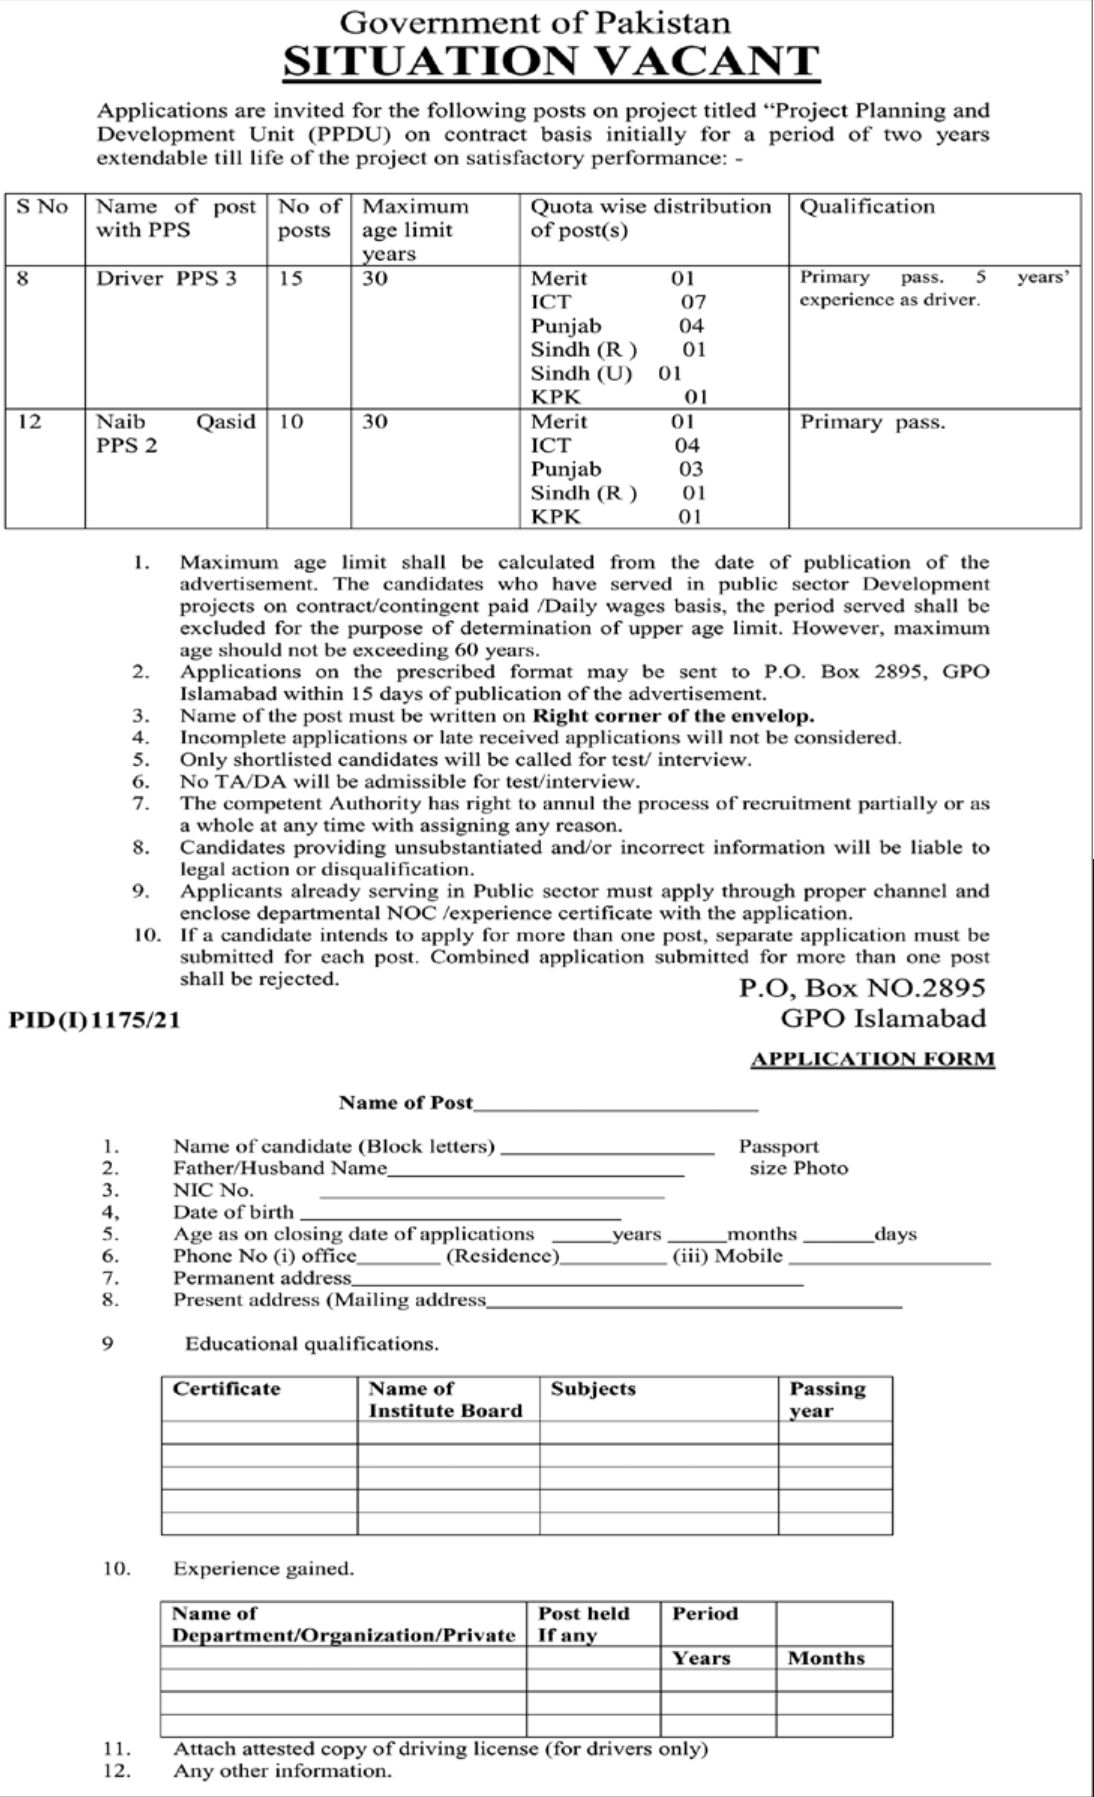 Government of Pakistan Project Planning and Development Unit PPDU Vacancies 2021 2